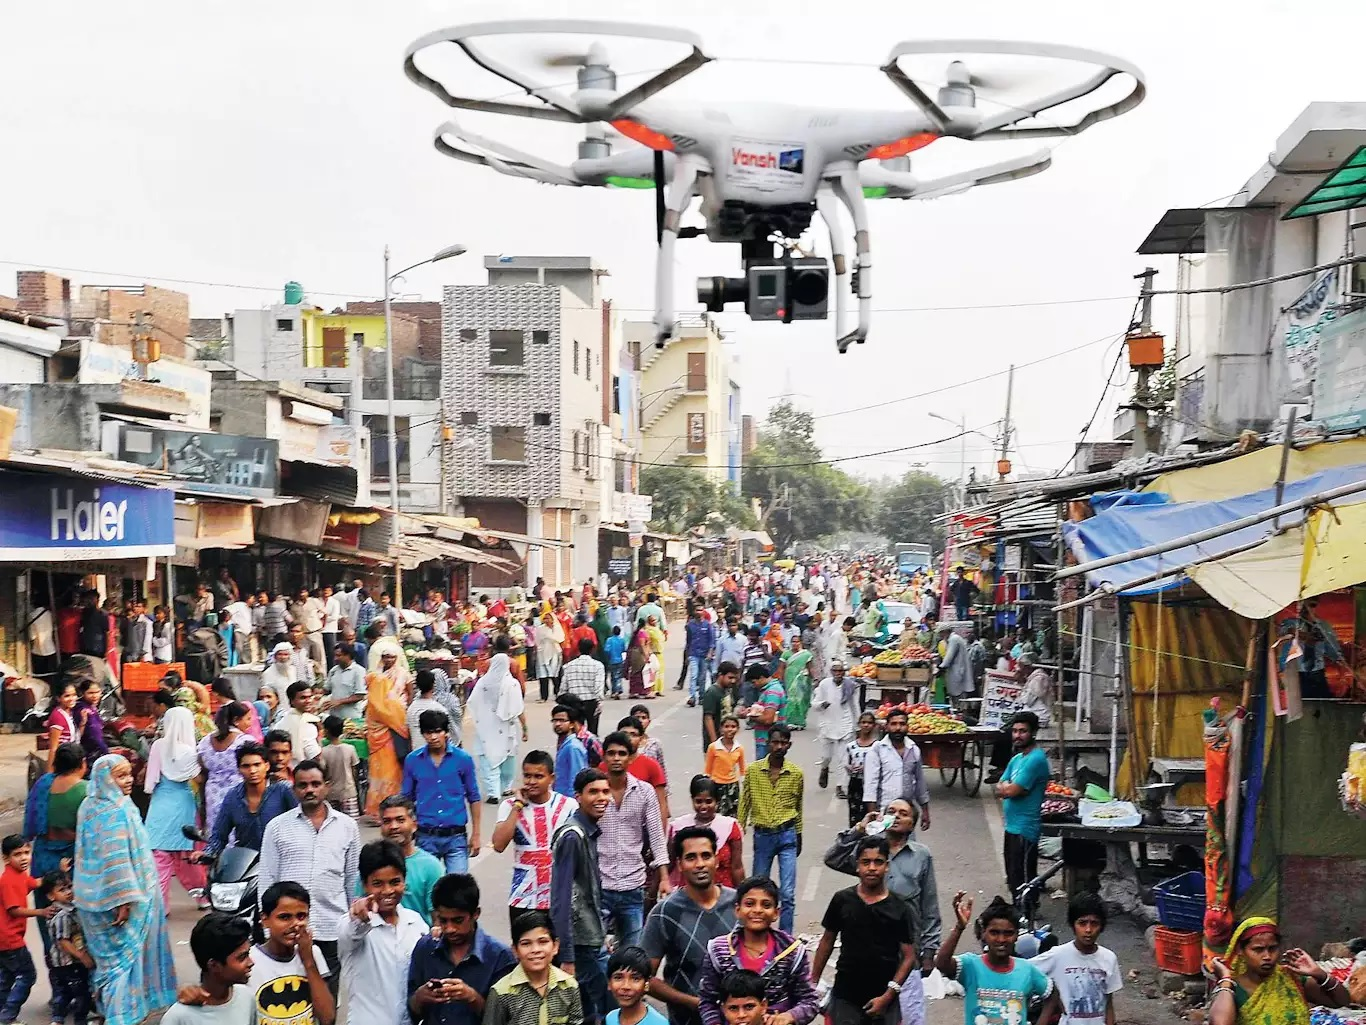 Allahabad High court directs drone surveillance to check violation of social distancing and mask norms